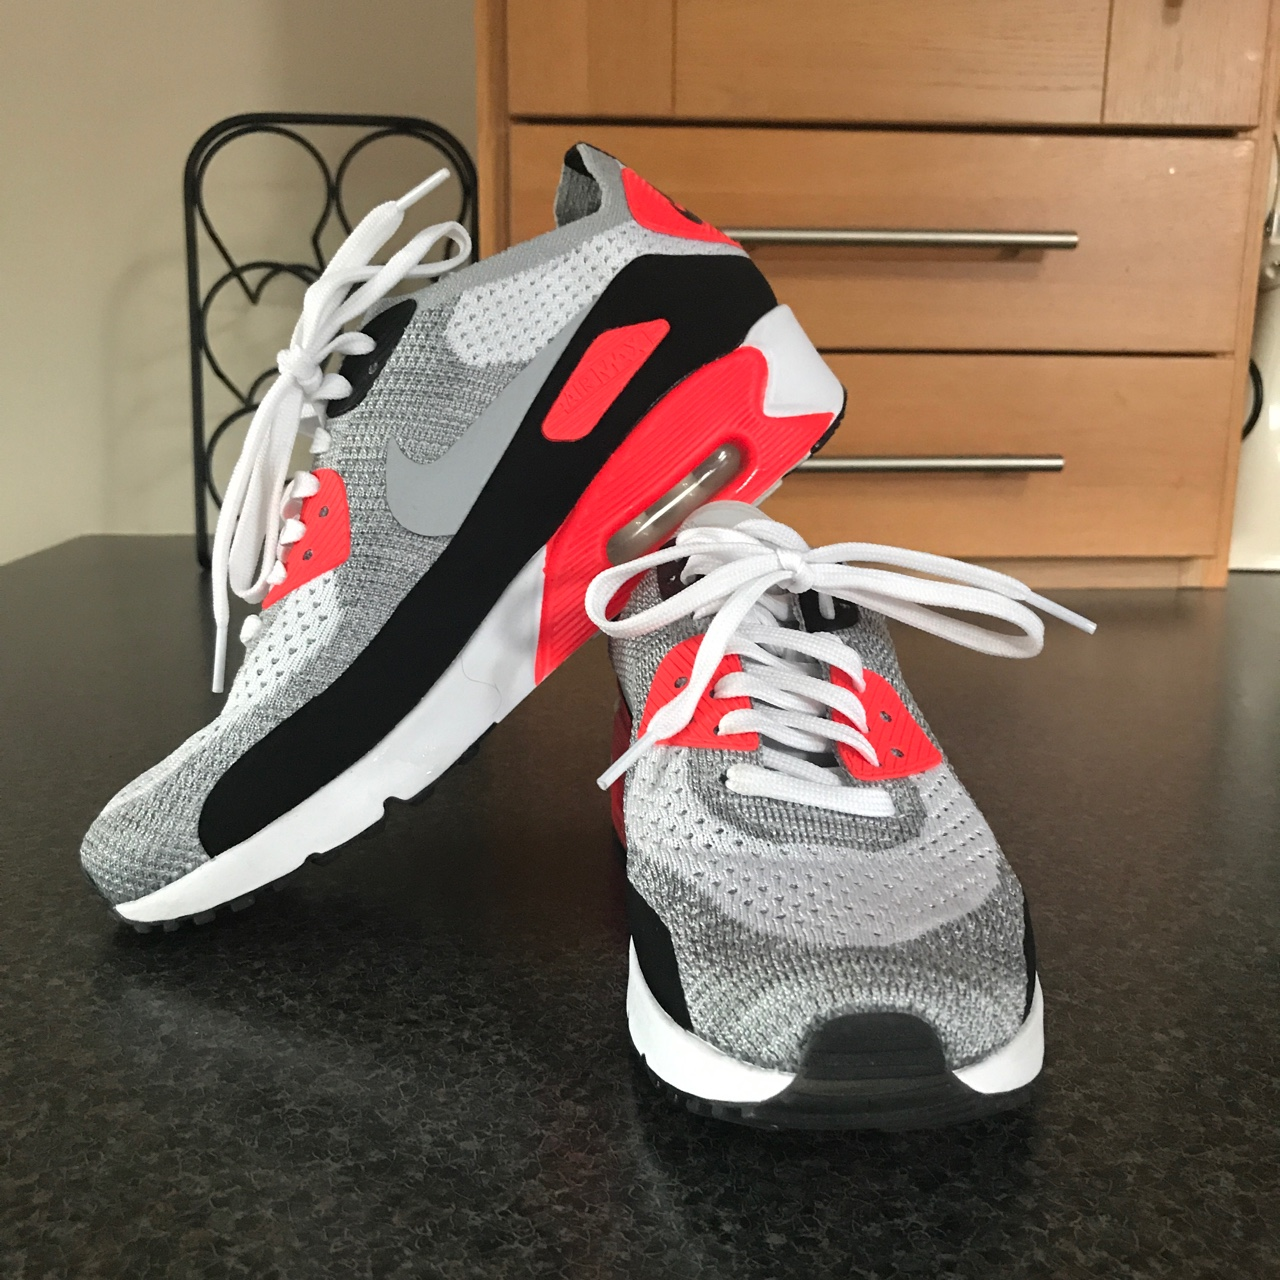 Nike Air Max 90 Ultra 2.0 Flyknit Infrared. Size: Depop